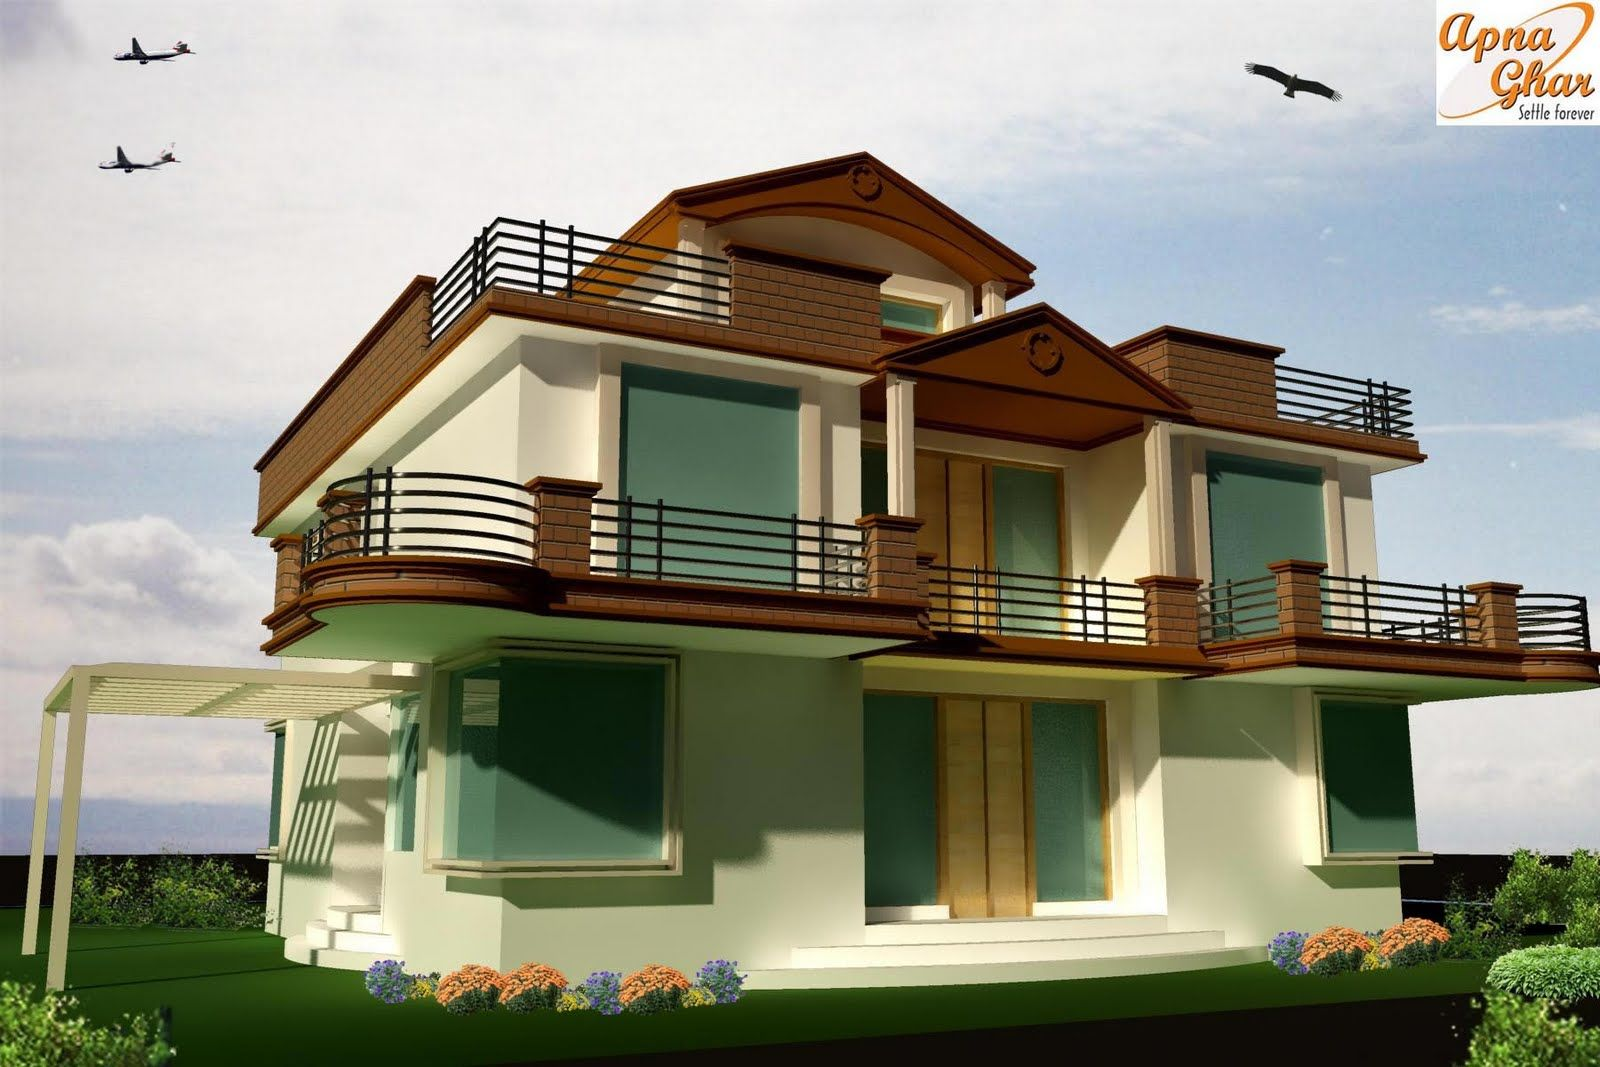 Architectural Designs Modern Architectural House Plans Architectural Customized Design At